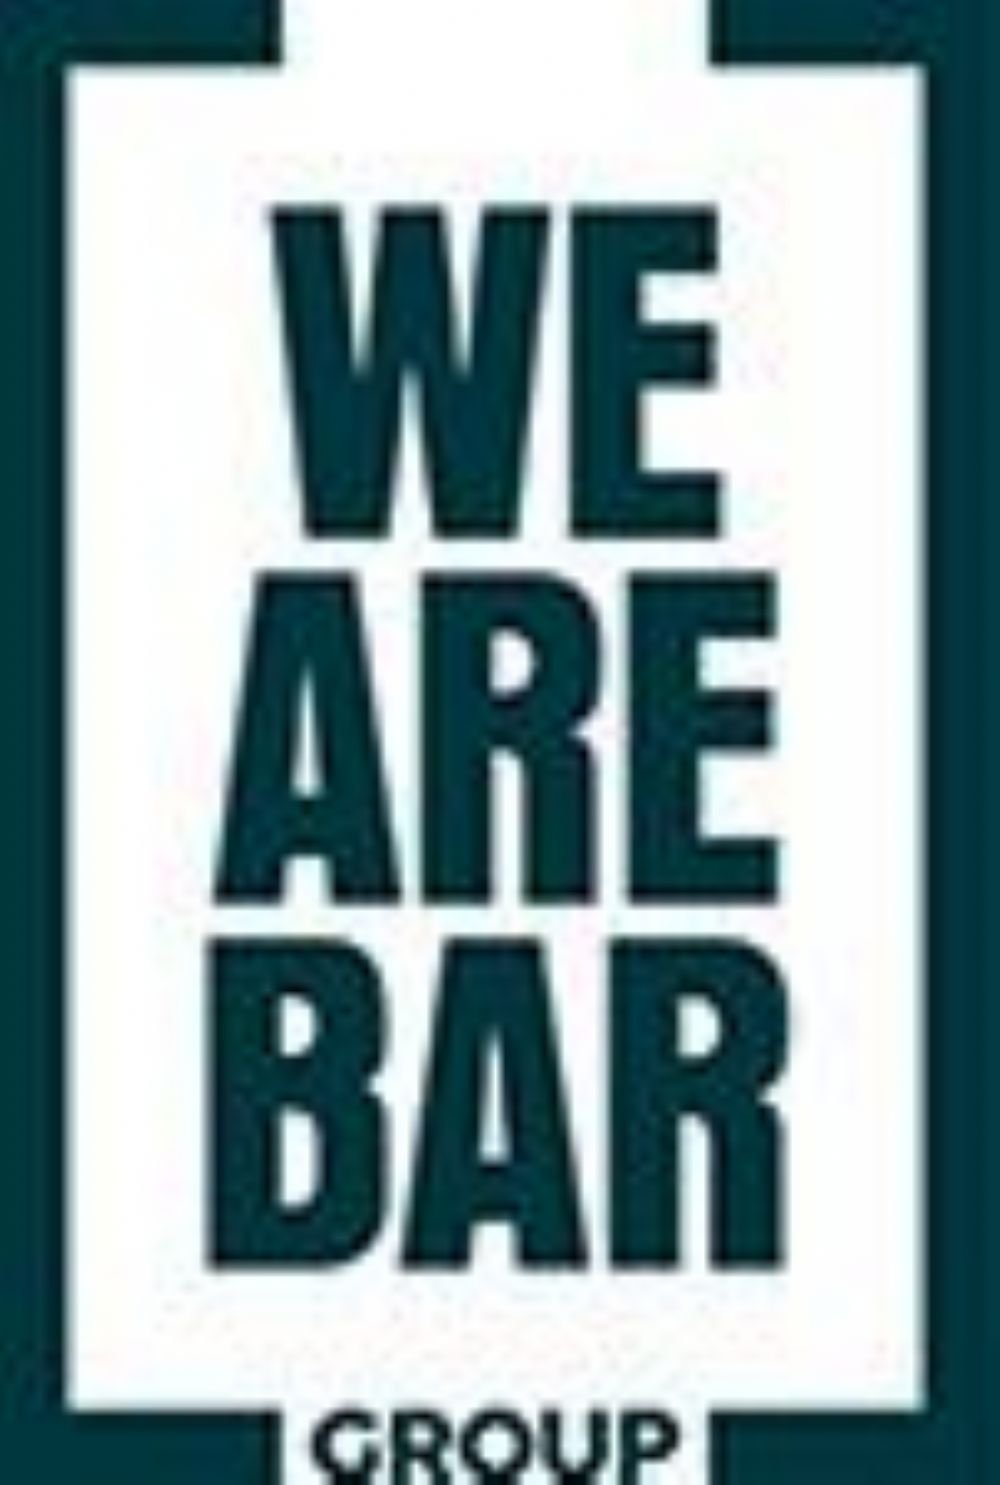 We Are Bar